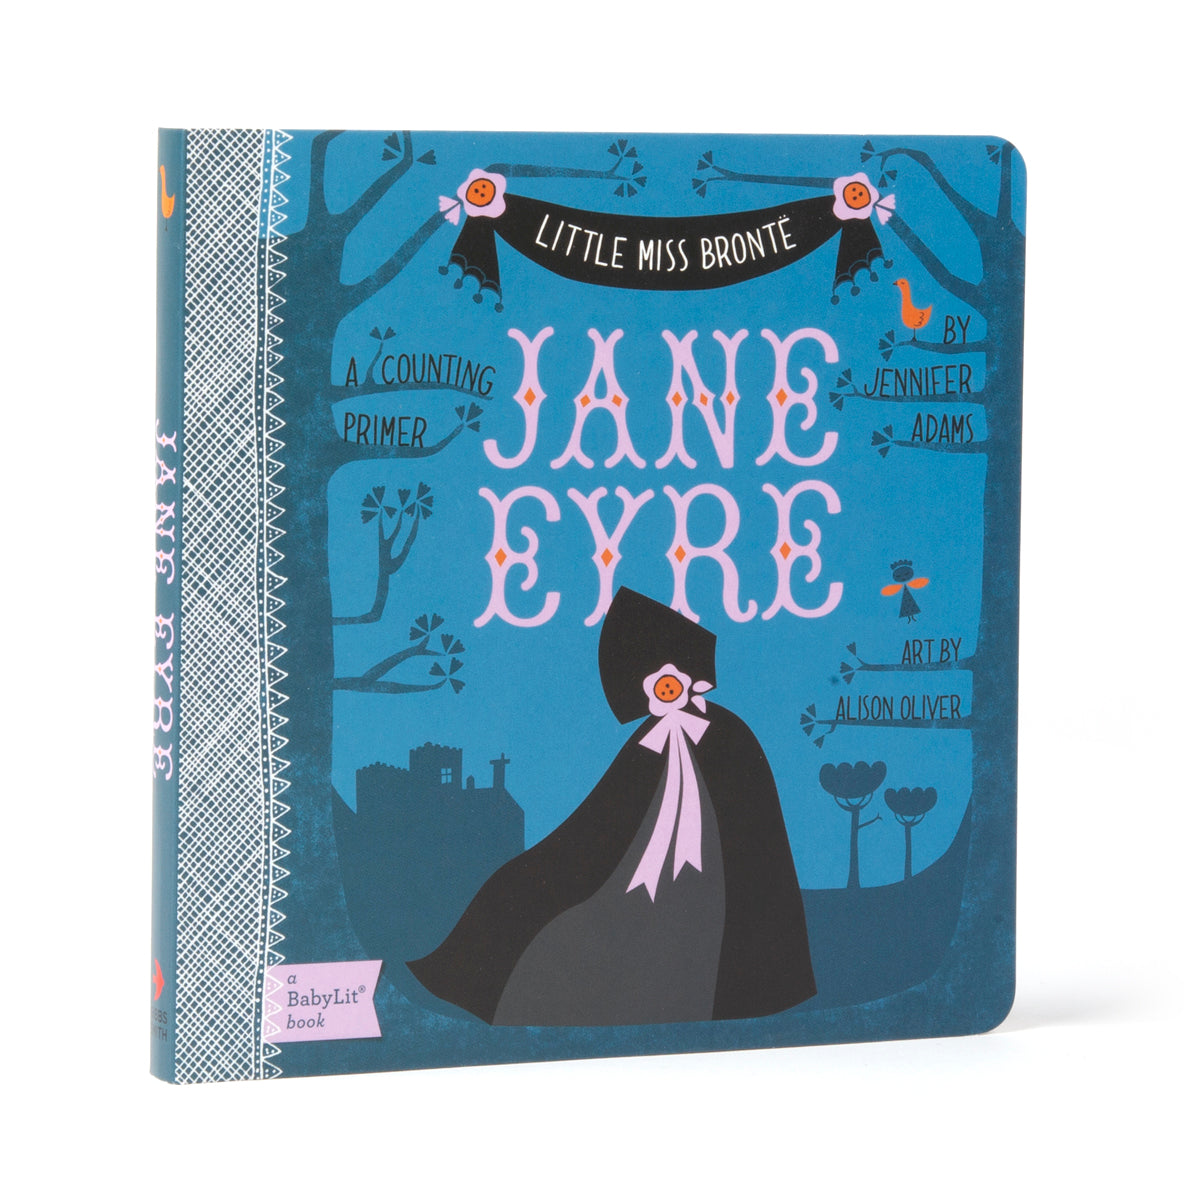 Jane Eyre: Counting Primer